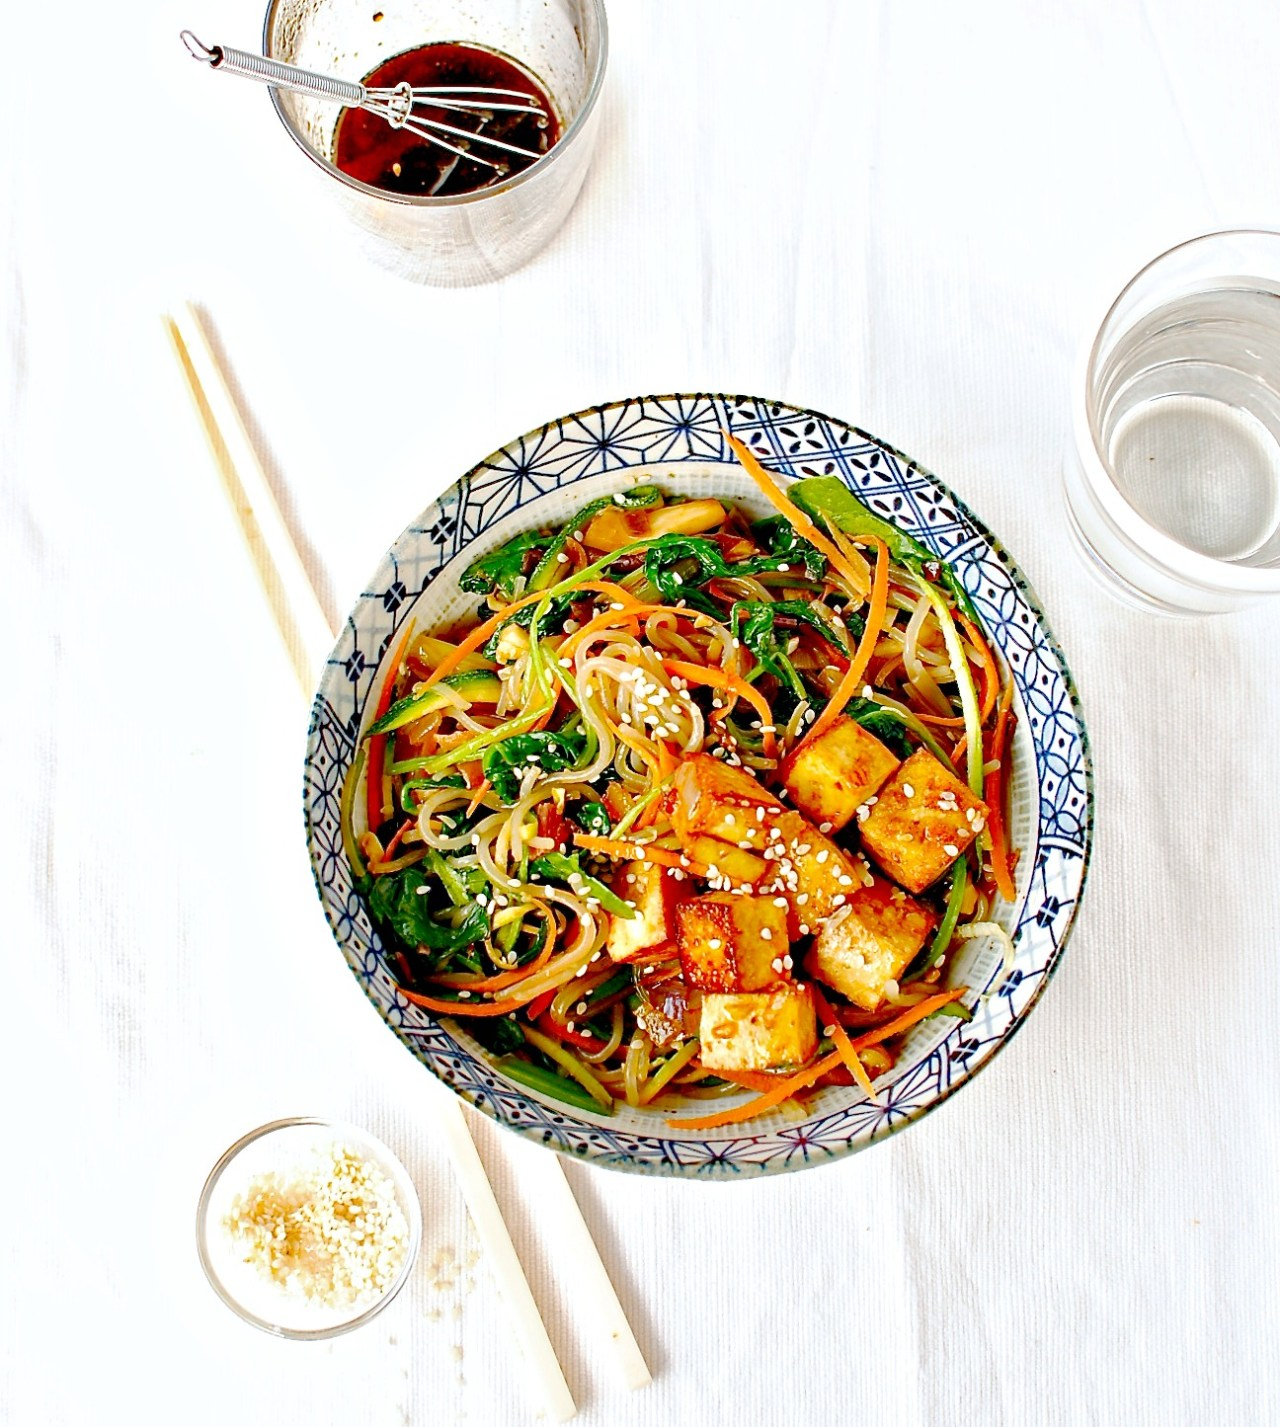 Korean Sweet Potato Noodle Stir Fry (Japchae) with Marinated Baked Tofu